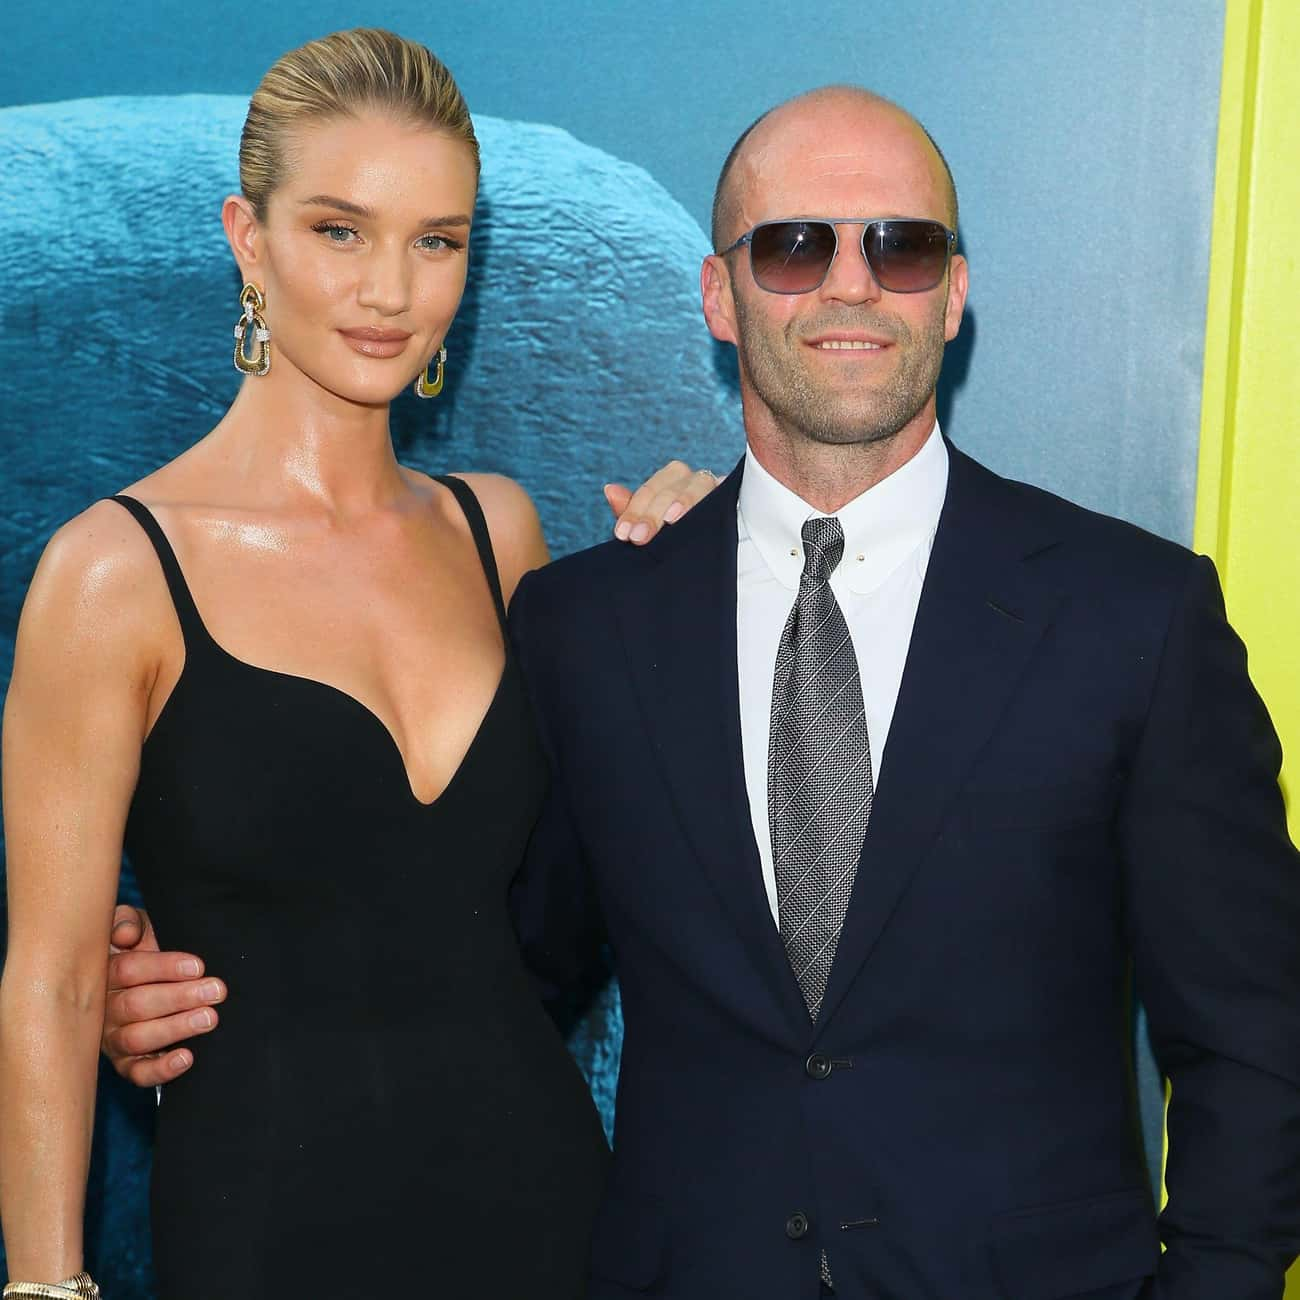 Rosie Huntington-Whiteley is listed (or ranked) 1 on the list Jason Statham Loves and Hookups